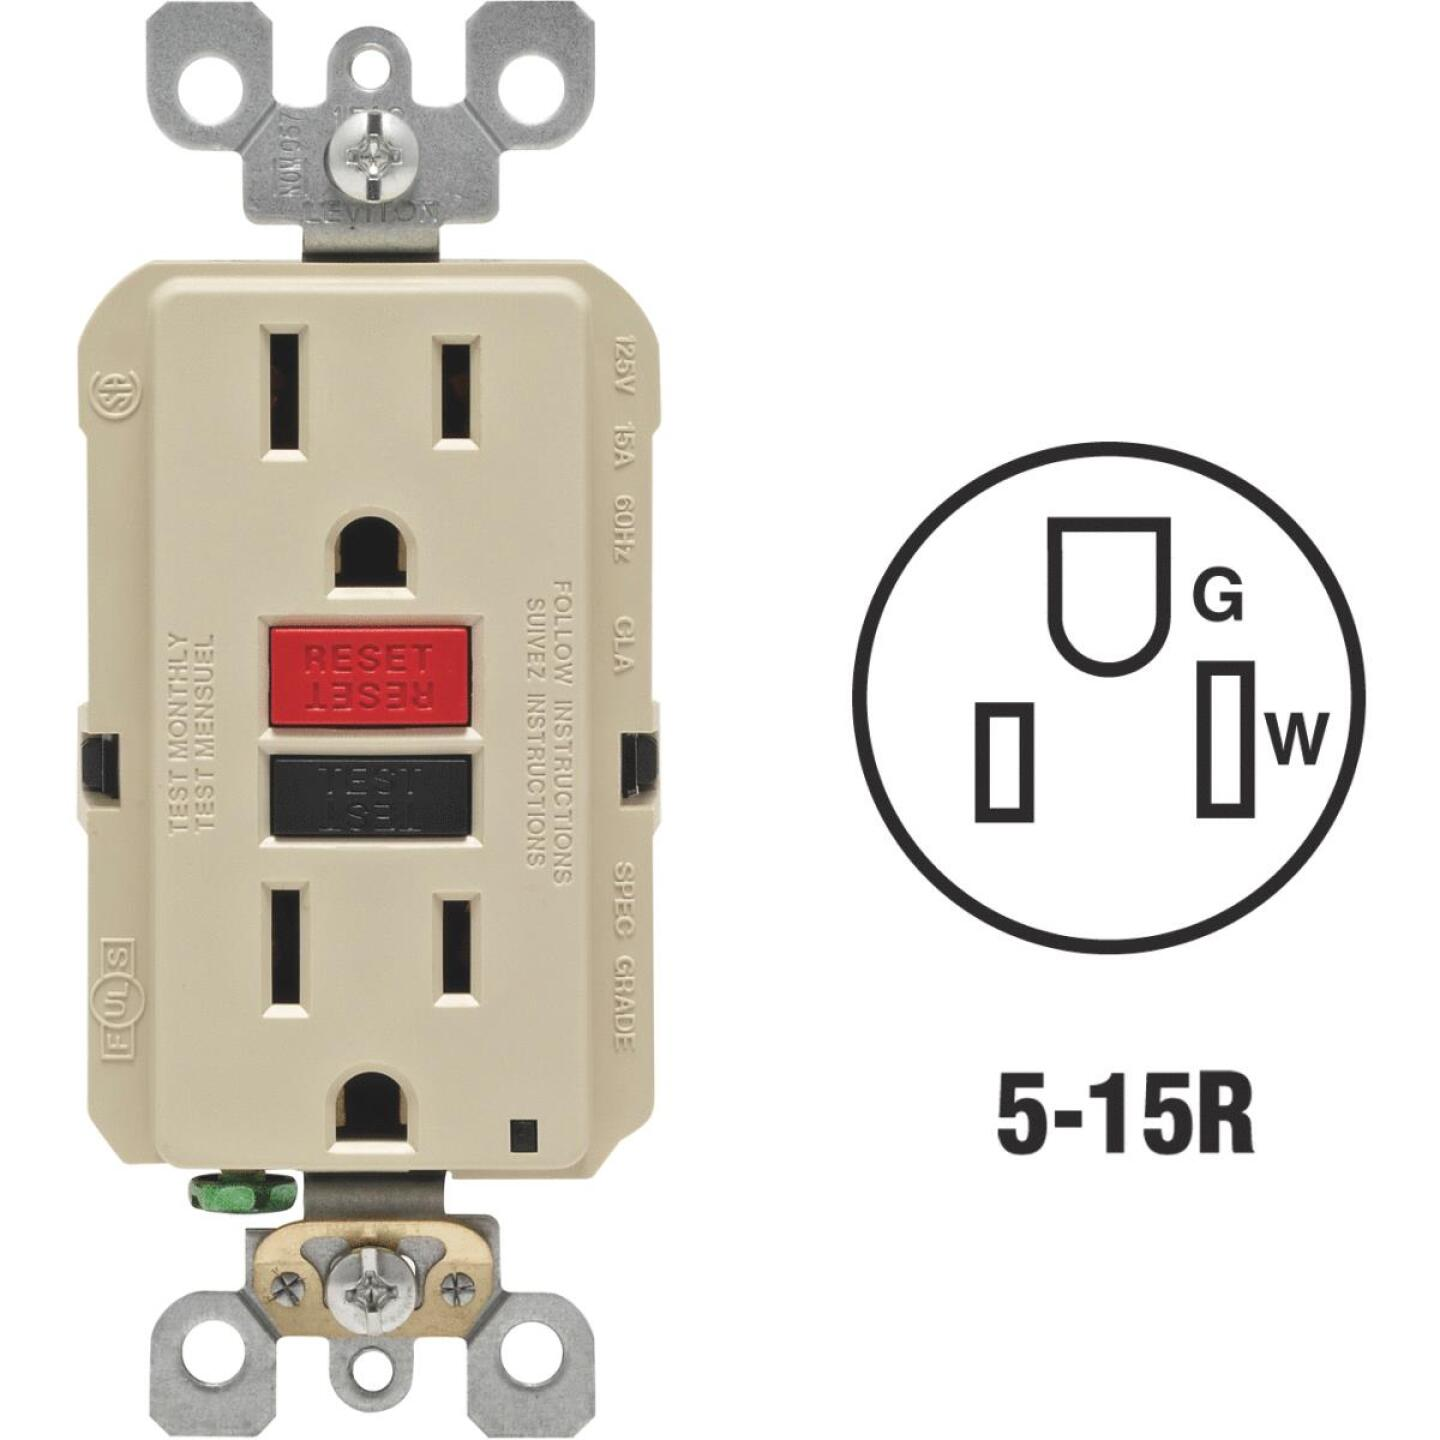 Leviton SmartlockPro Self-Test 15A Ivory Residential Grade 5-15R GFCI Outlet Image 1